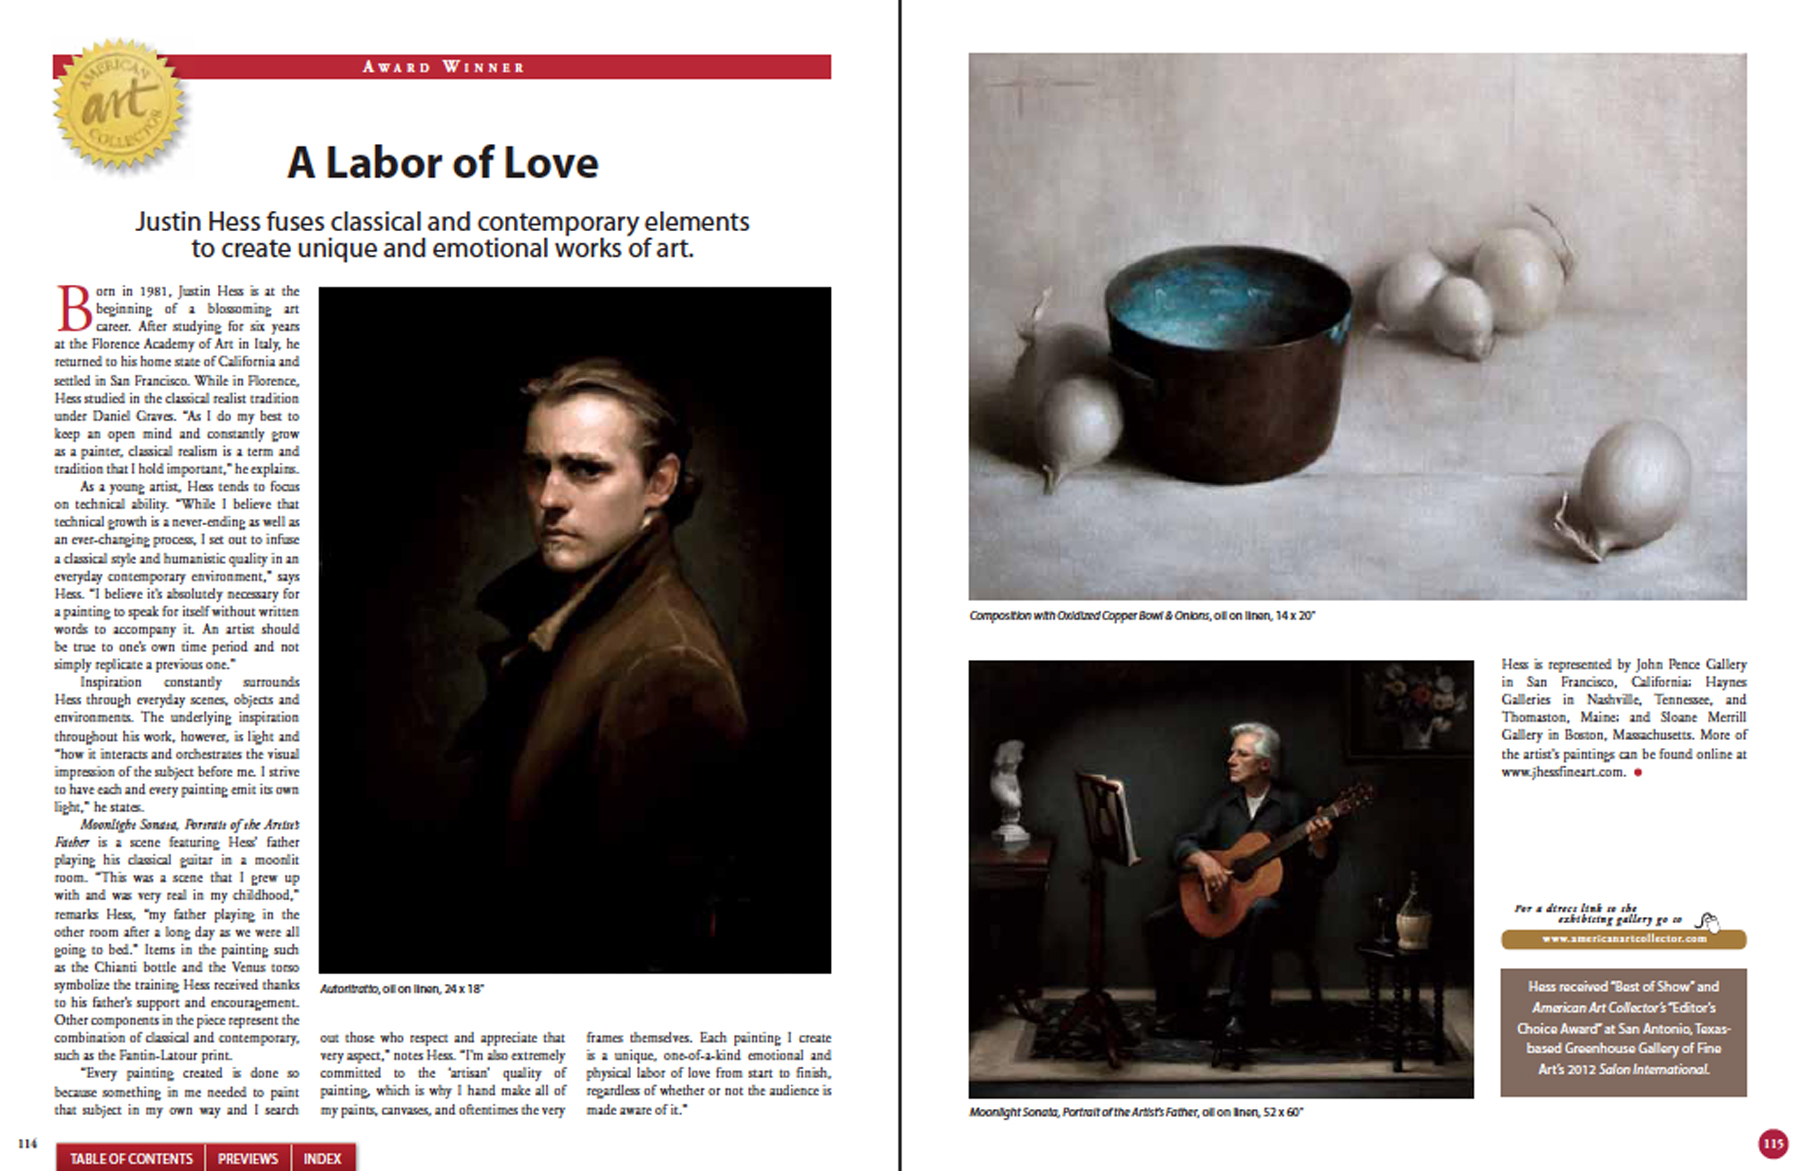 American Art Collector - June Issue 2013